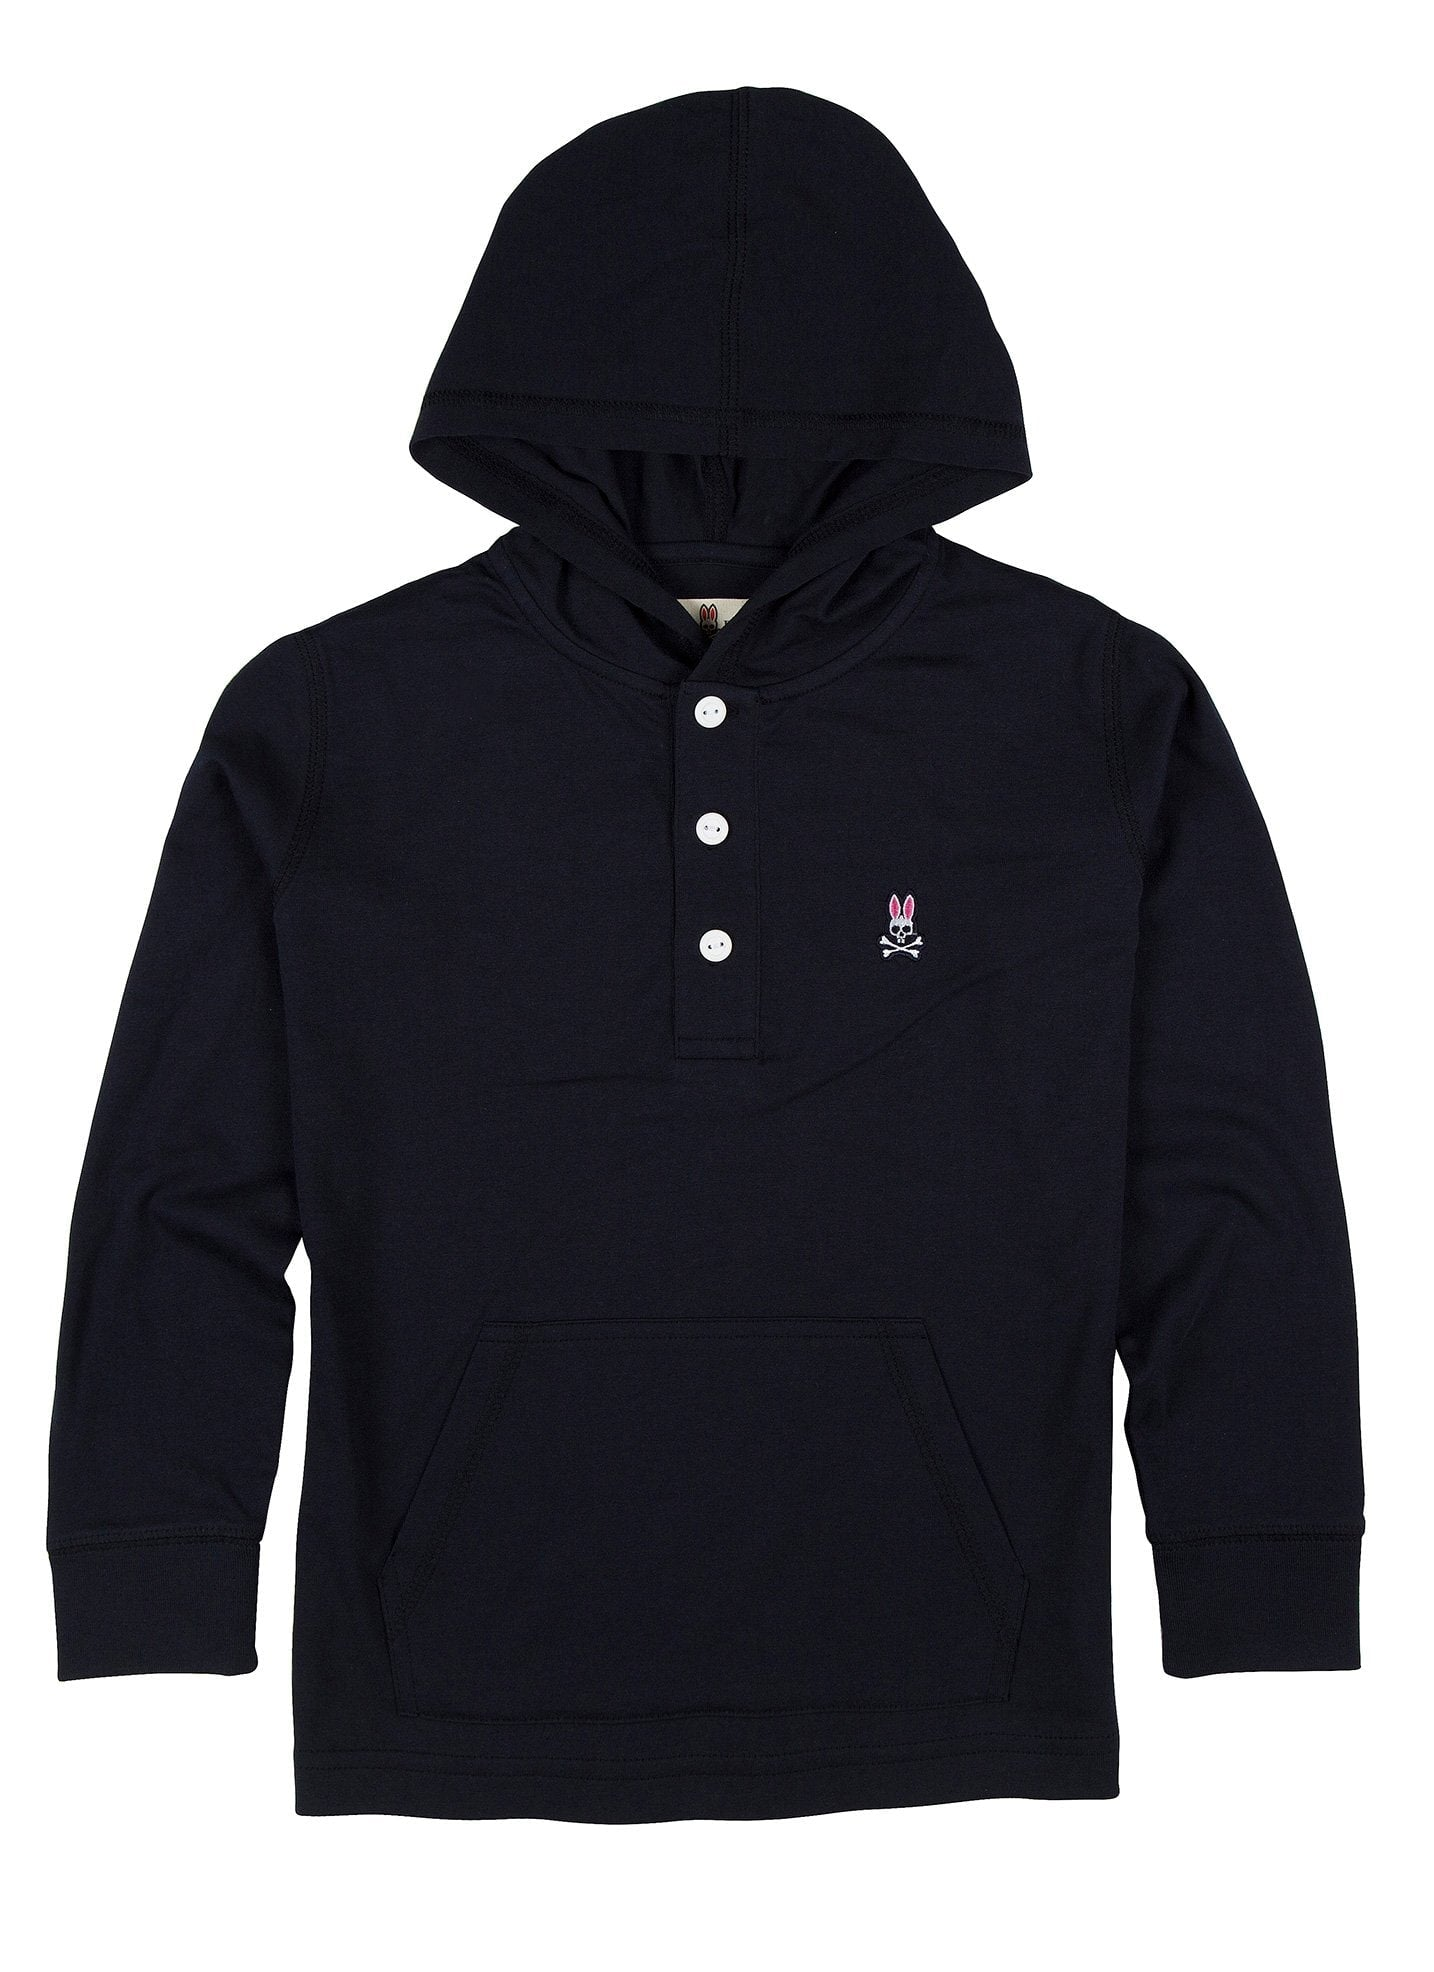 BOYS PLACKET HOODIE - B0H241S7PC - NAVY